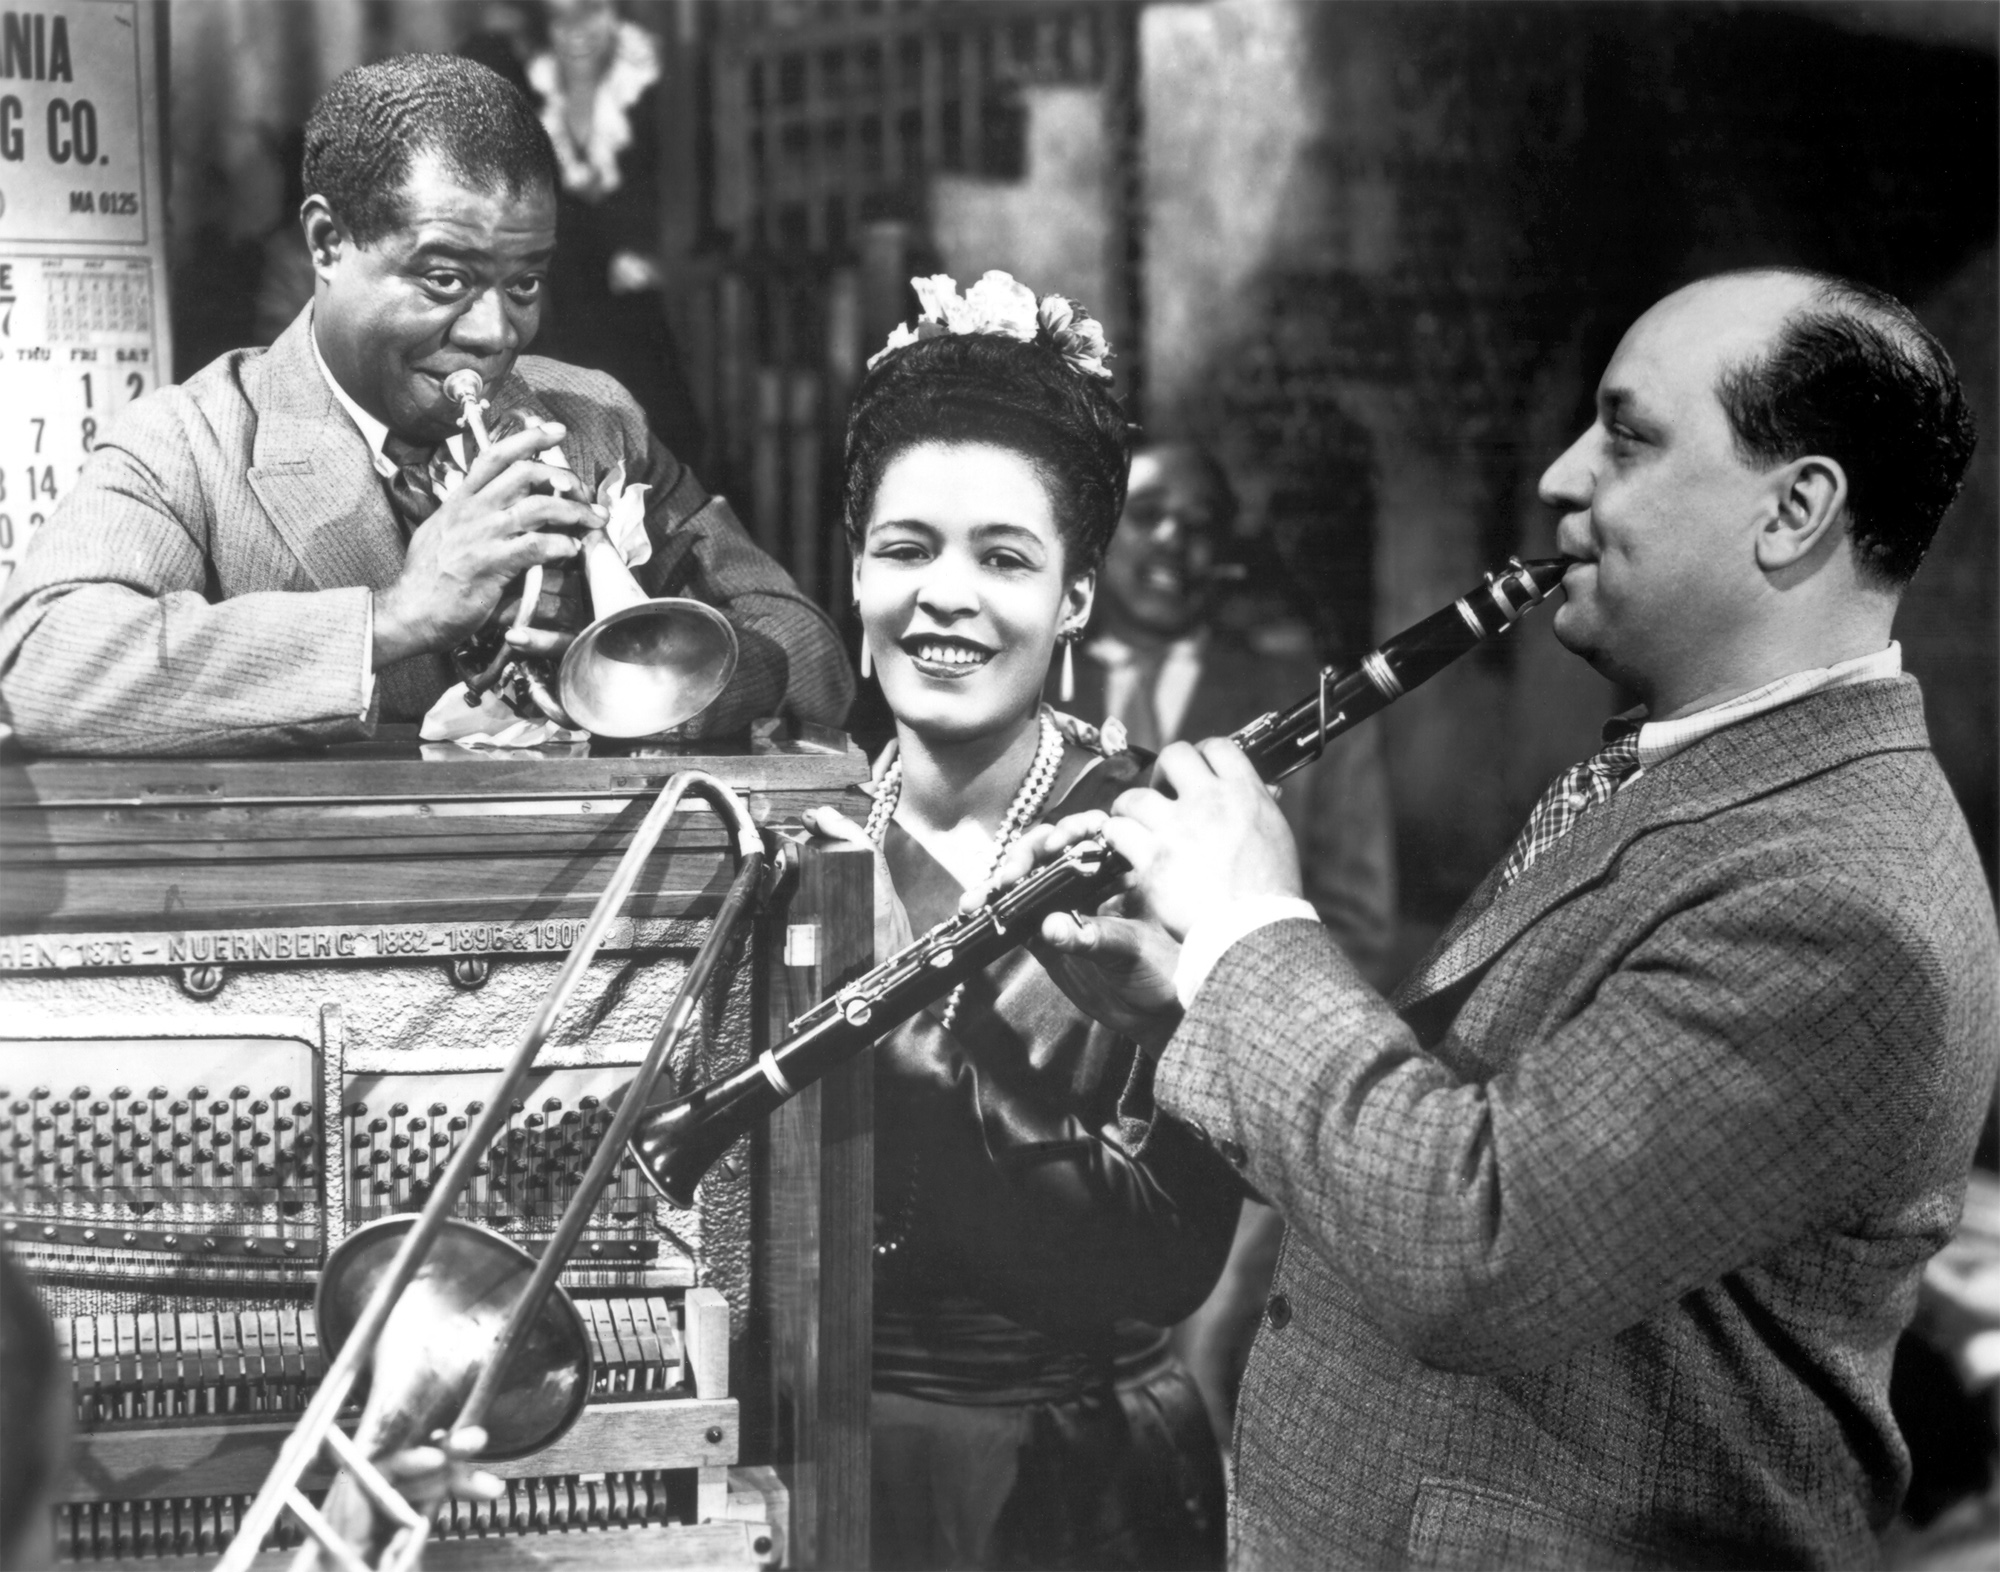 http://lounge.obviousmag.org/isso_compensa/Billie_Holiday_16.jpg